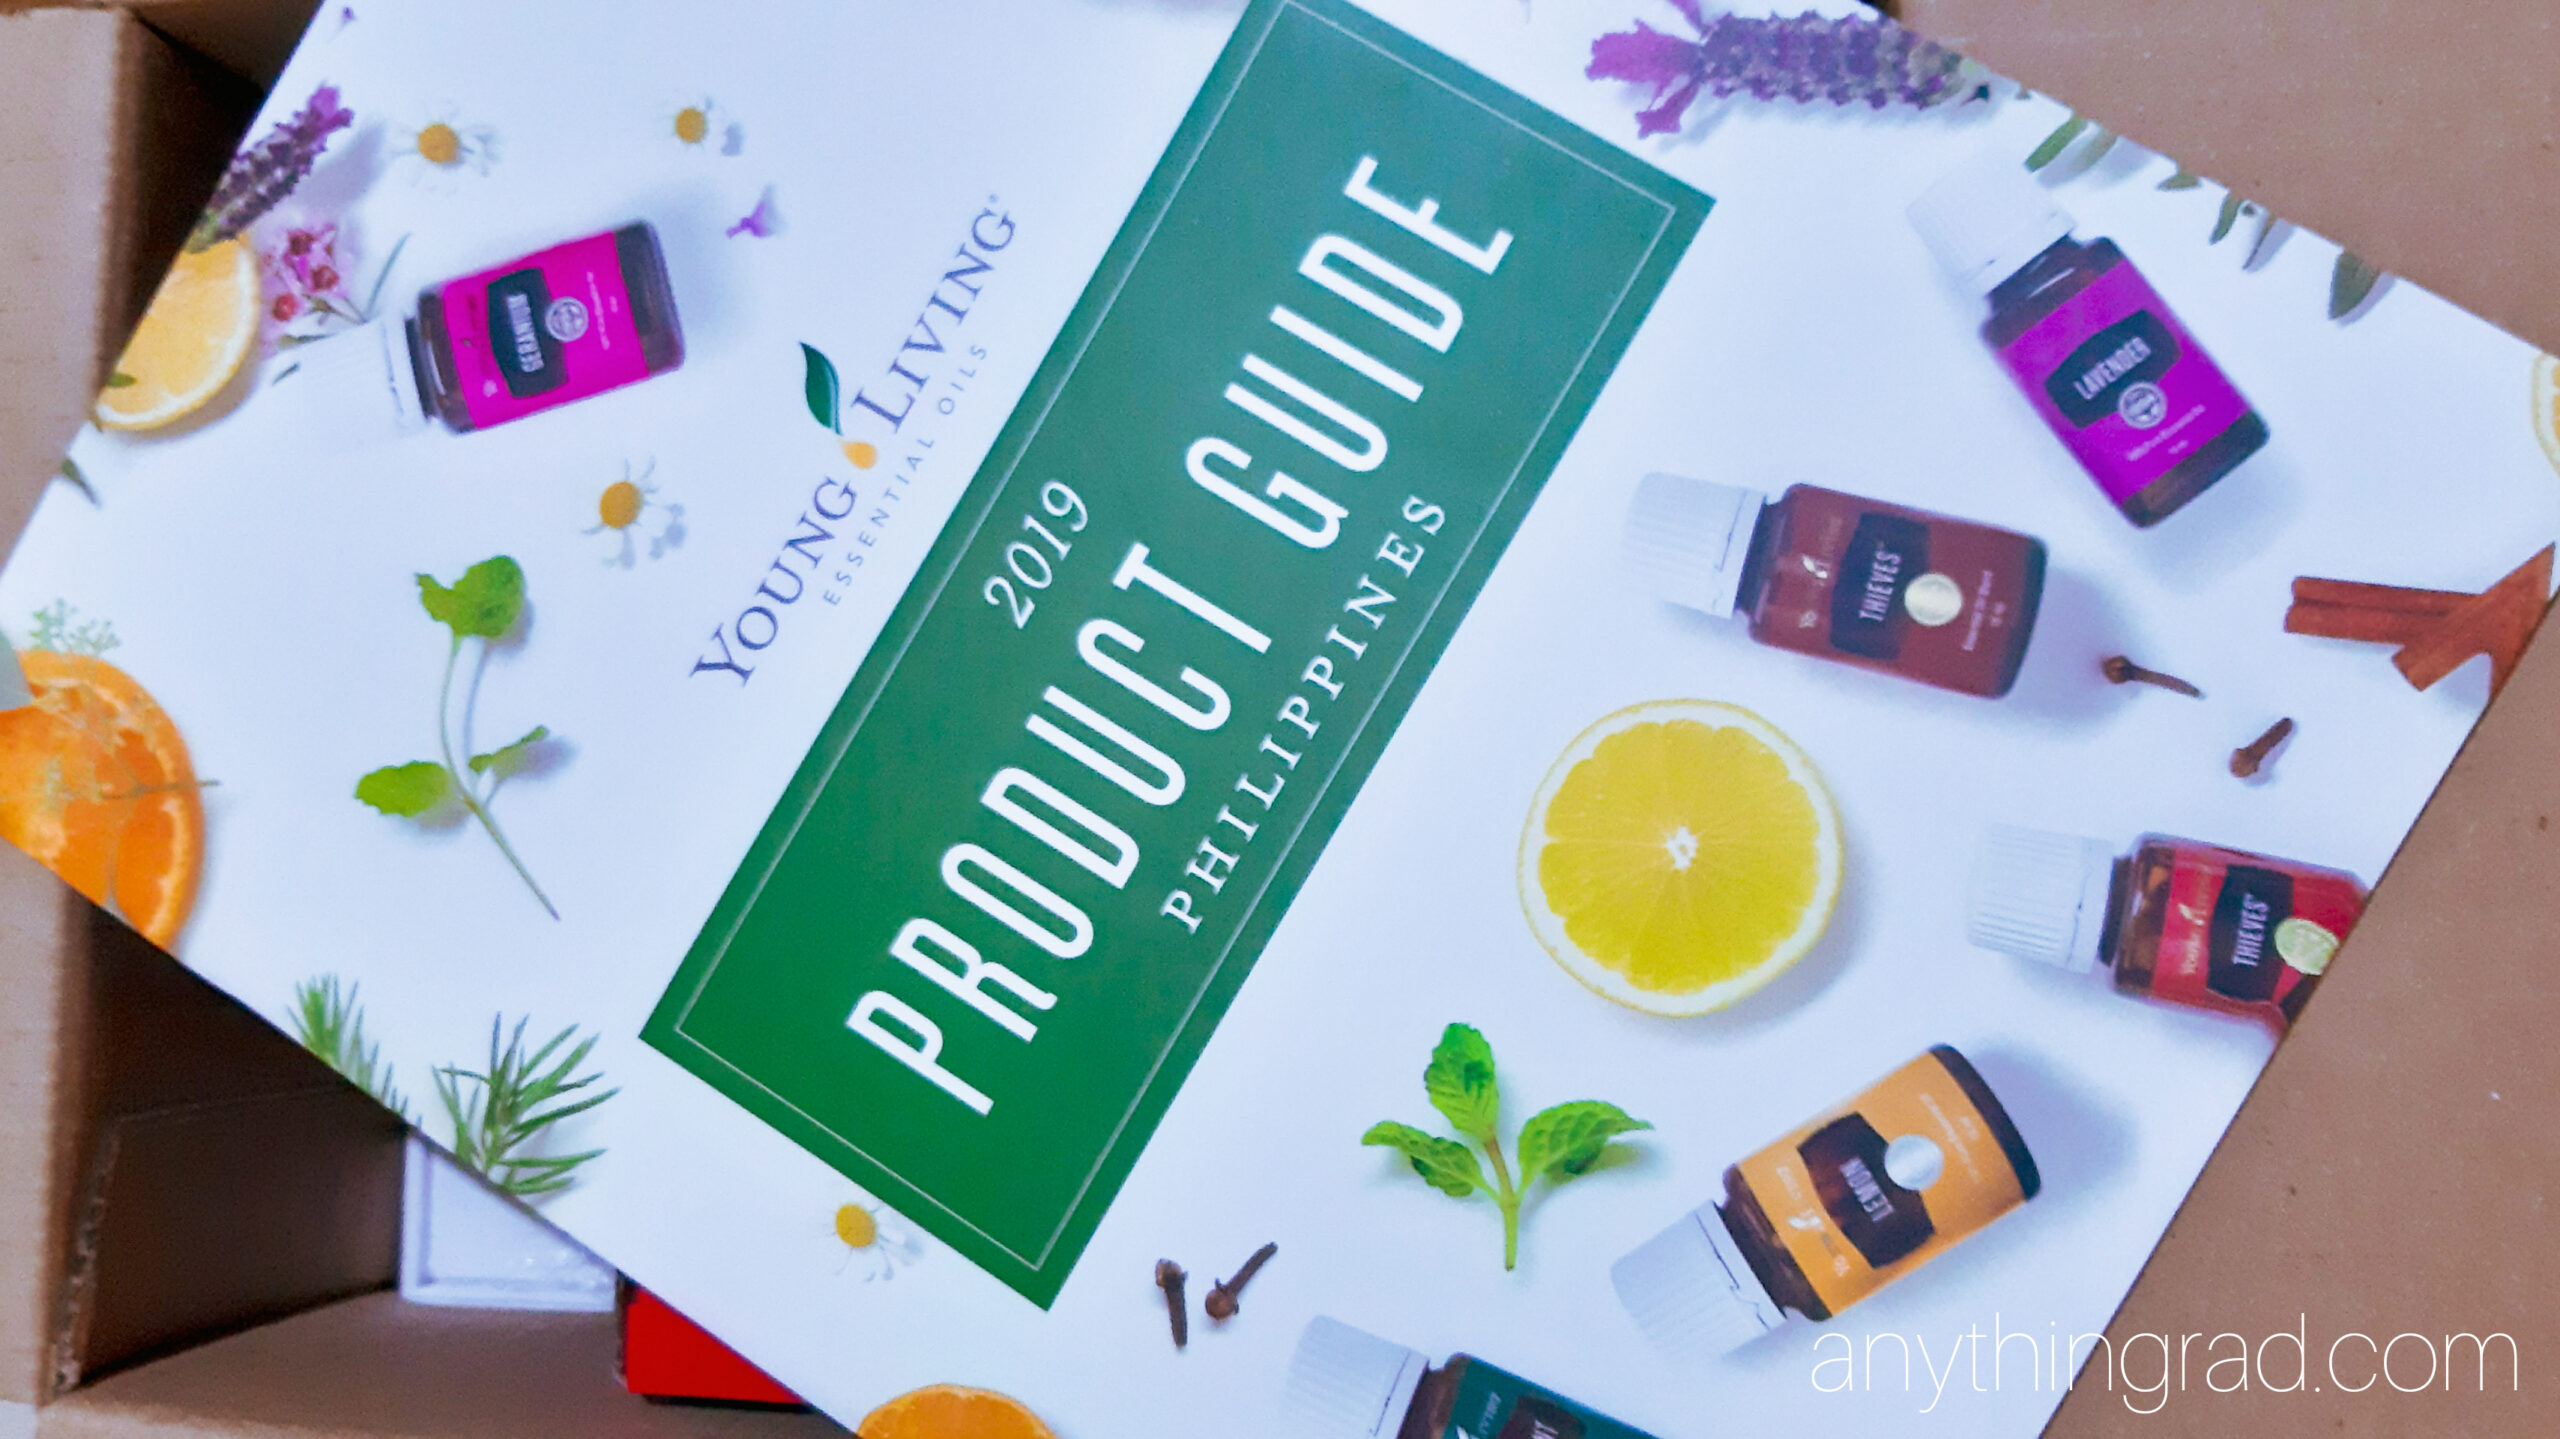 Product Guide inside PSK Young Living Philippines